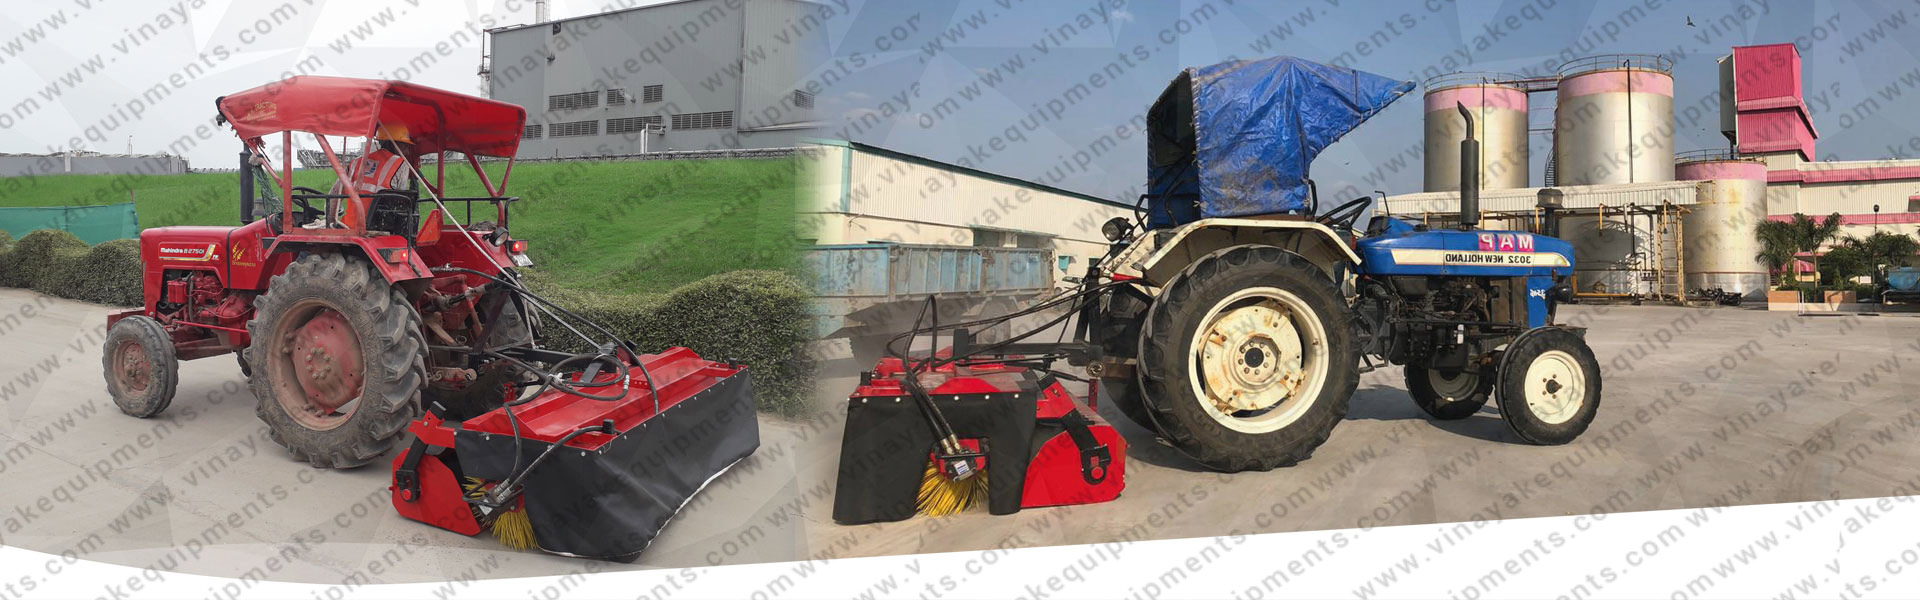 Road Sweeping Machine, Road Sweeper, Broomer